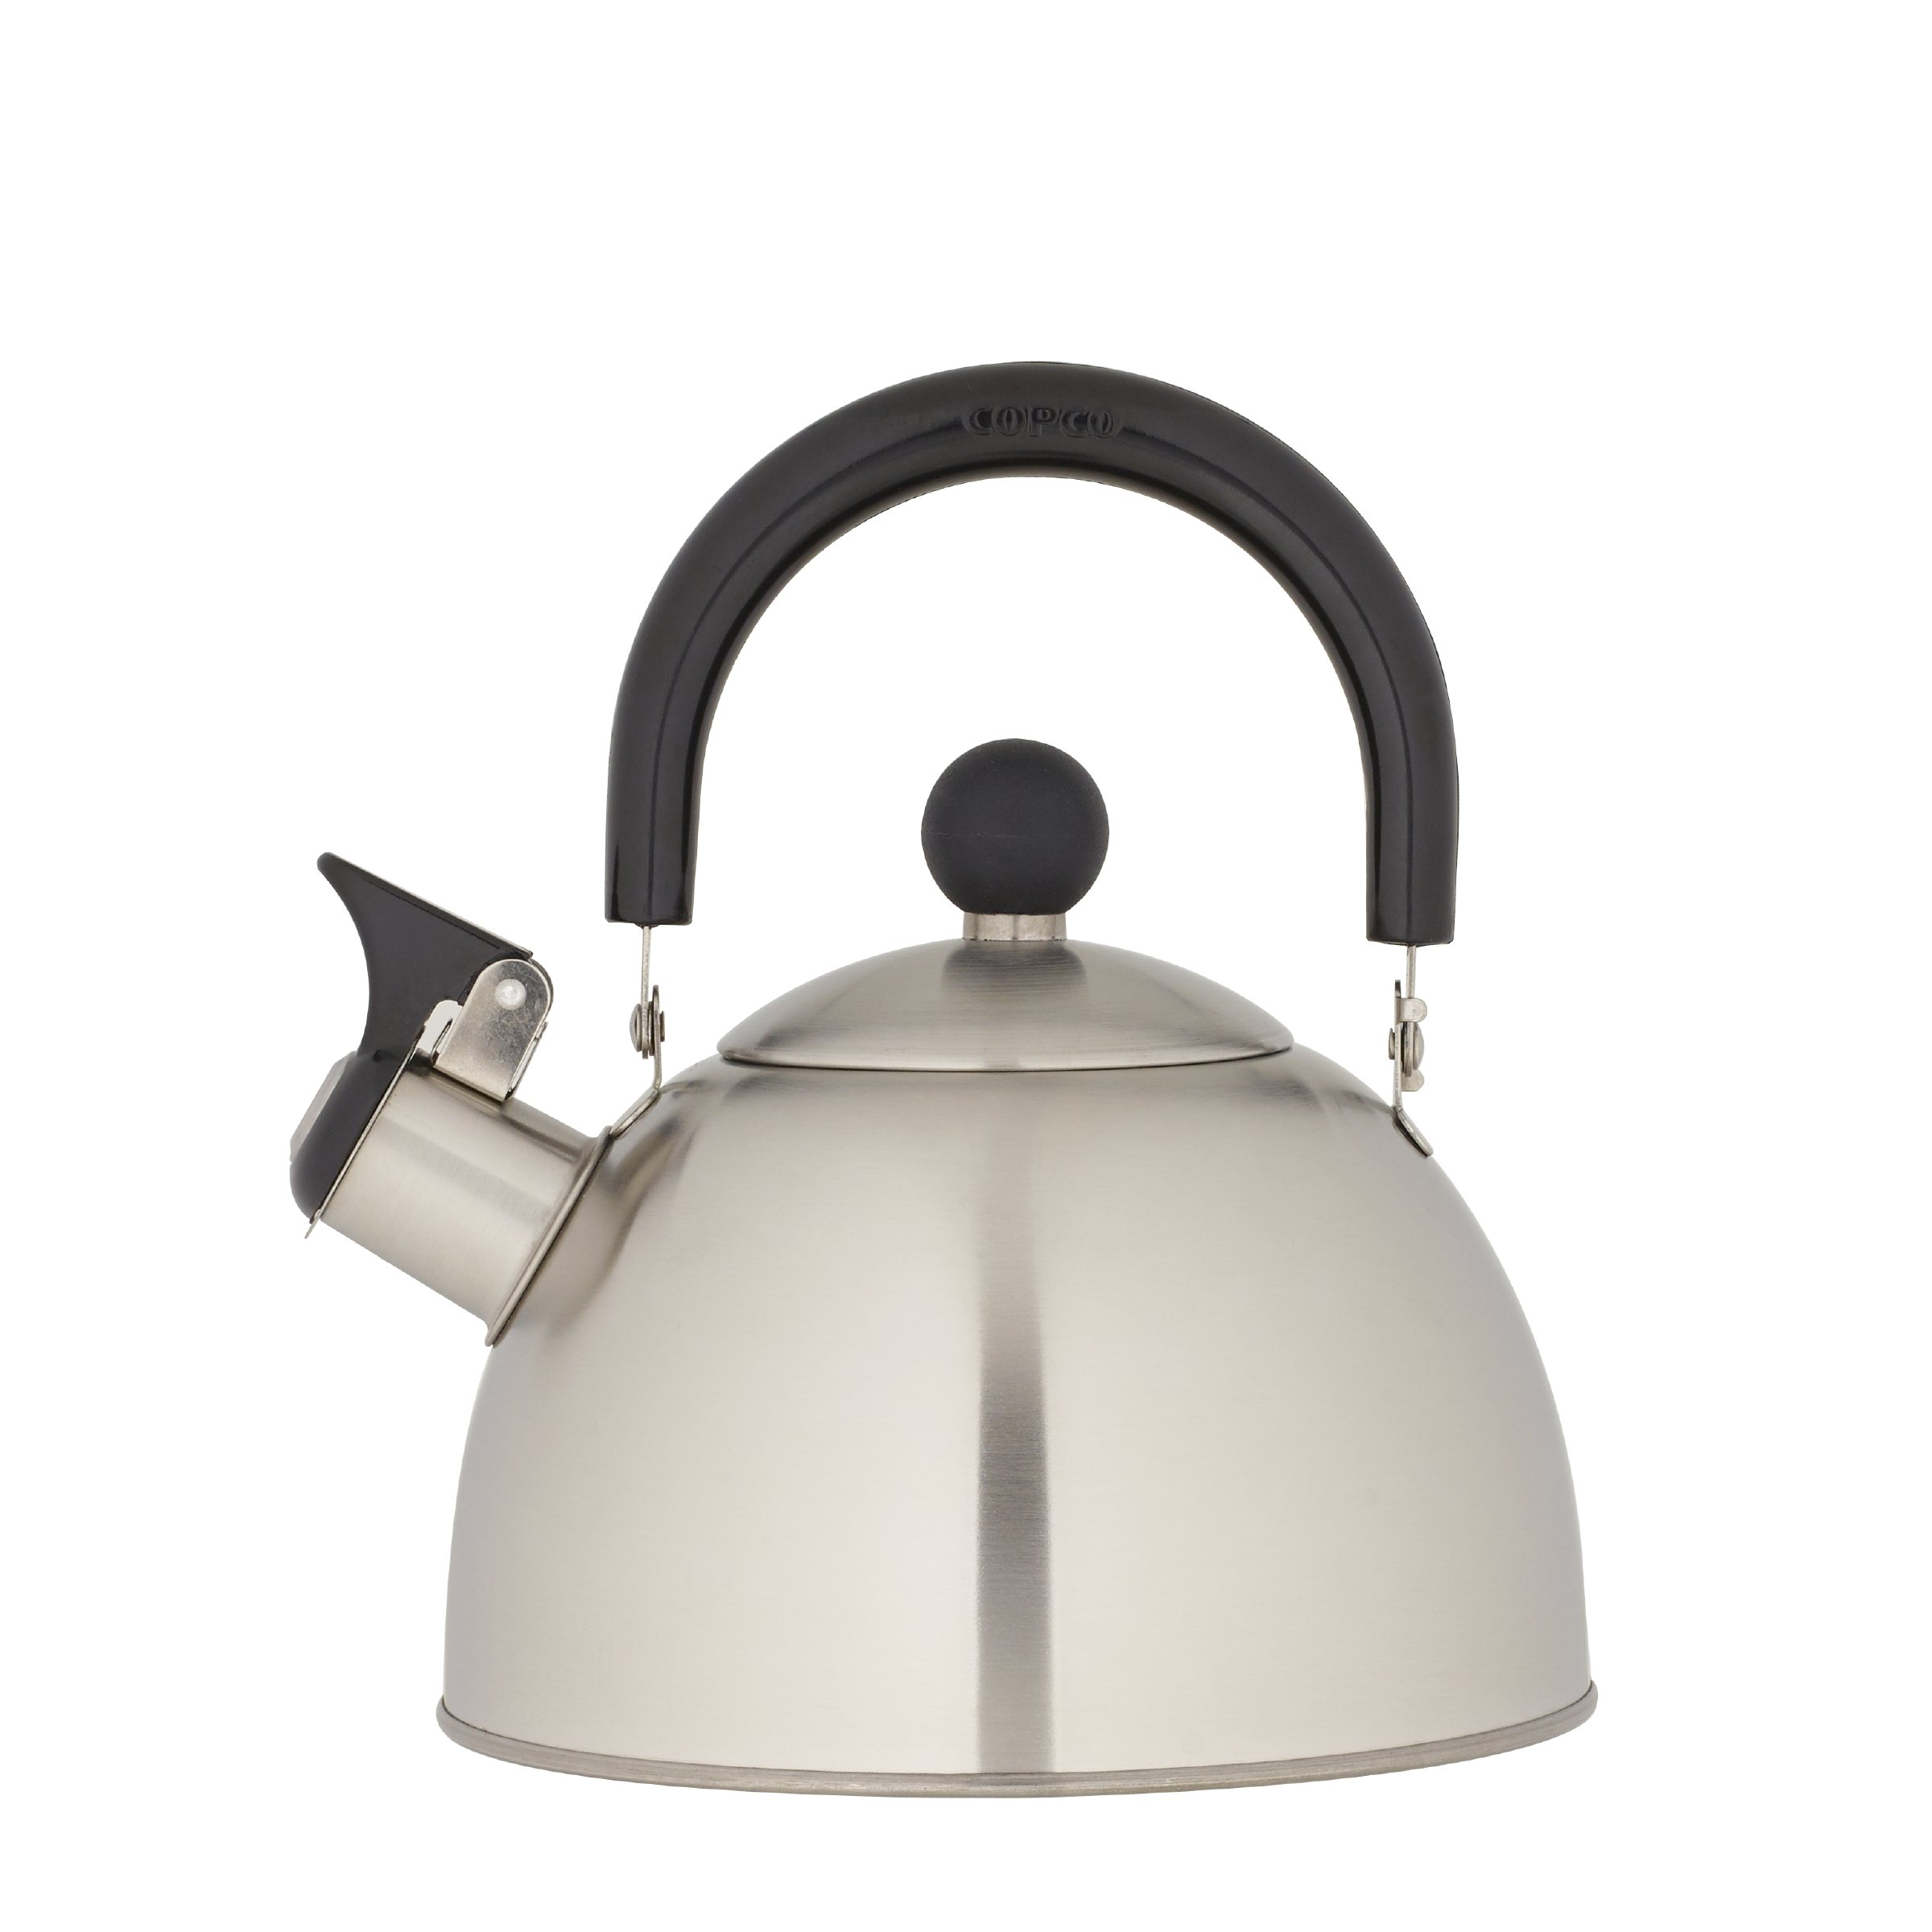 Copco 2503-0300 Kettering Brushed Stainless Steel Tea Kettle, 1.3 Quart by Copco